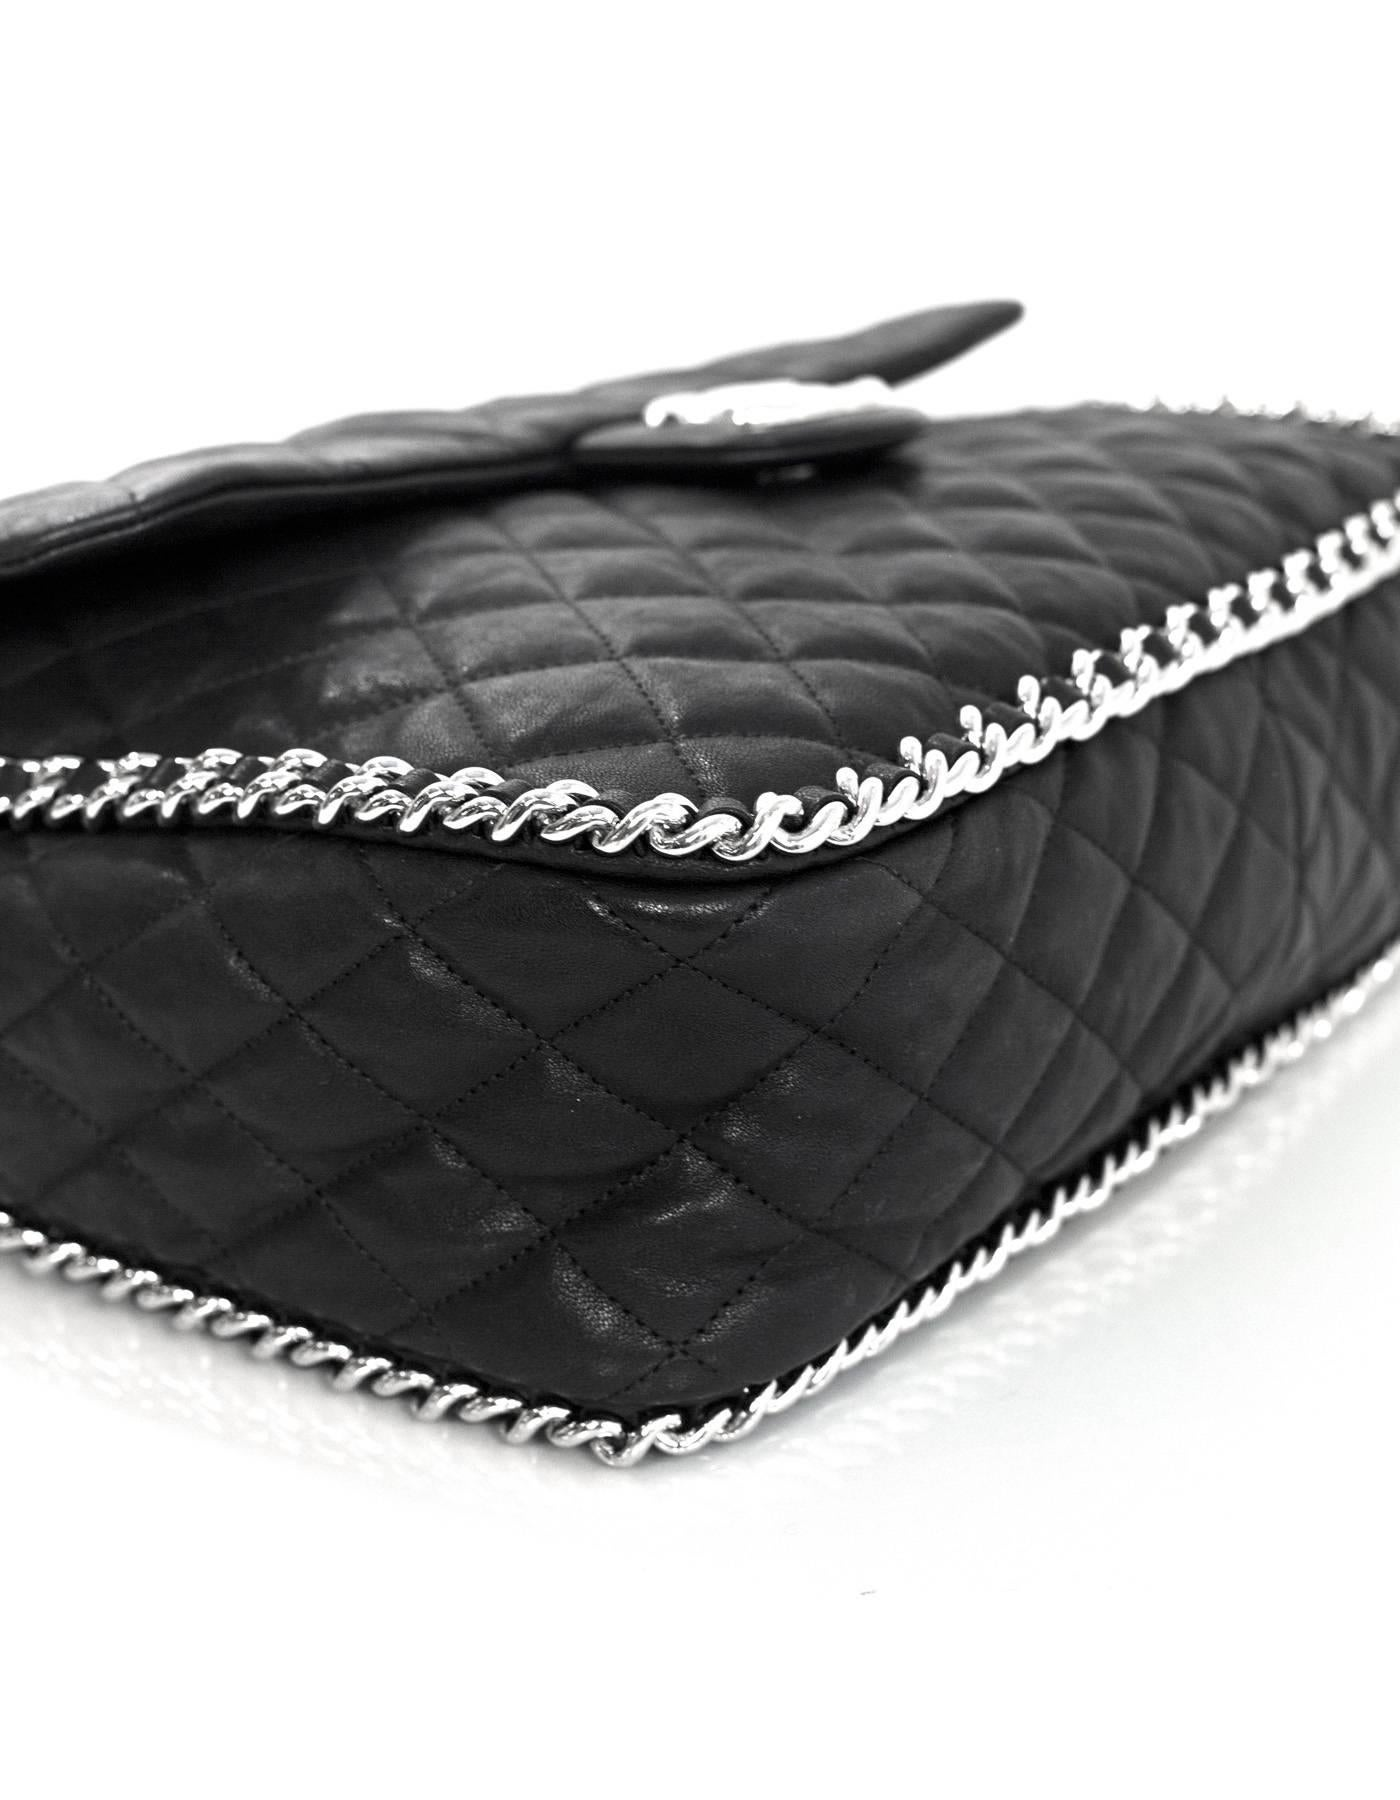 2491489243e5 Chanel Black Quilted Chain Around Maxi Flap Bag For Sale at 1stdibs